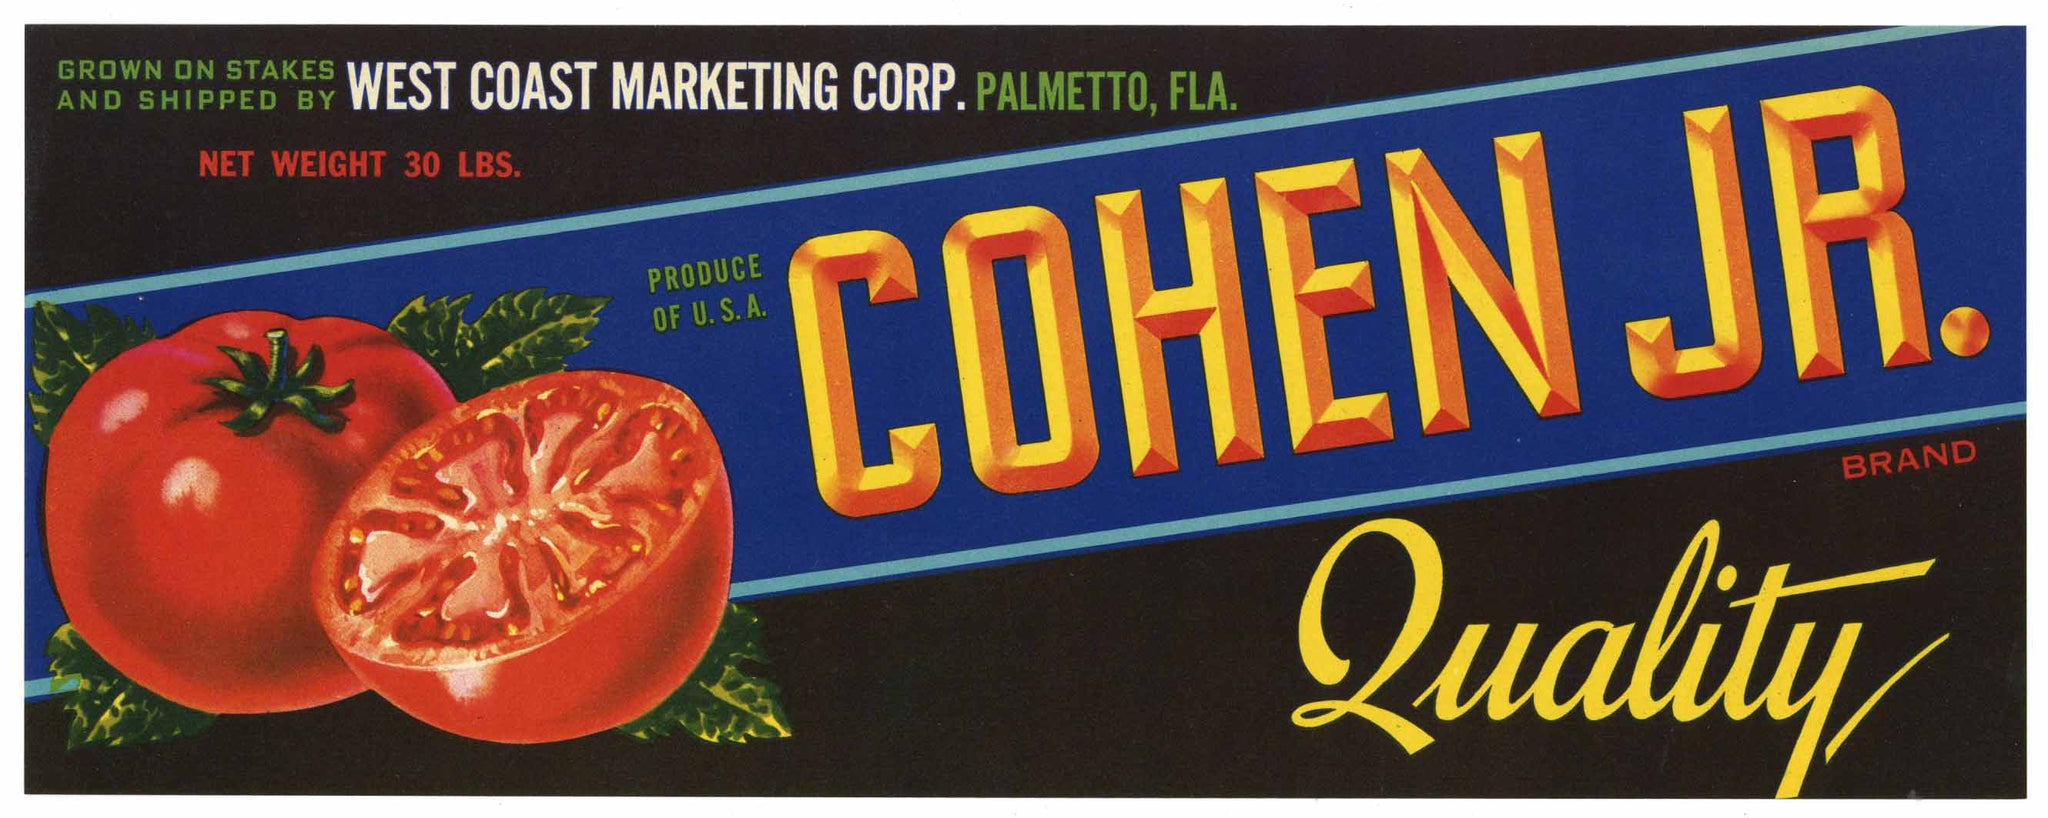 Cohen Jr. Brand Vintage Palmetto Florida Produce Crate Label, Tomato